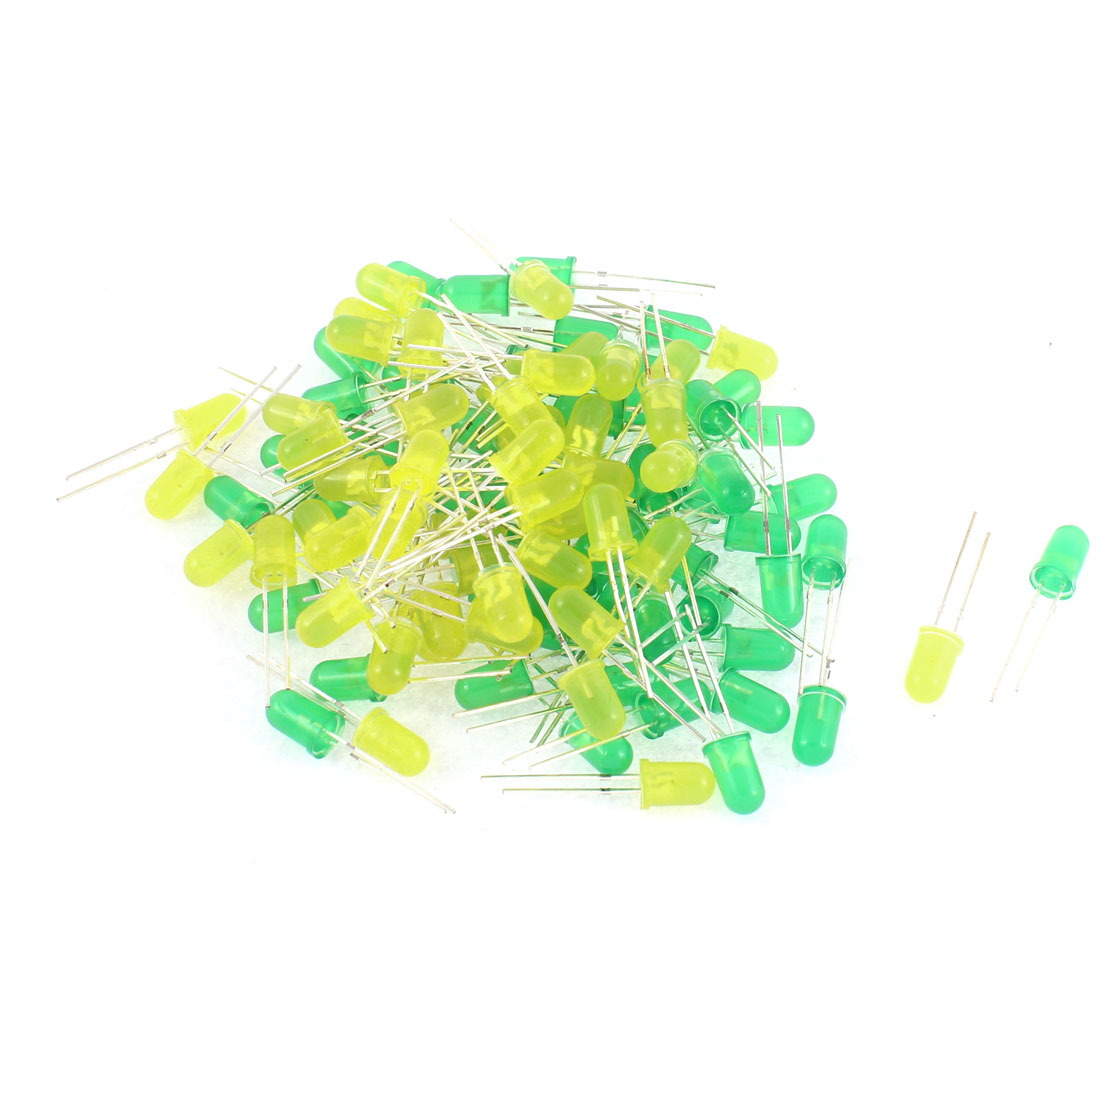 100pcs 5mm Green Yellow Round Diffused LED Light Diode Emitting Bulbs